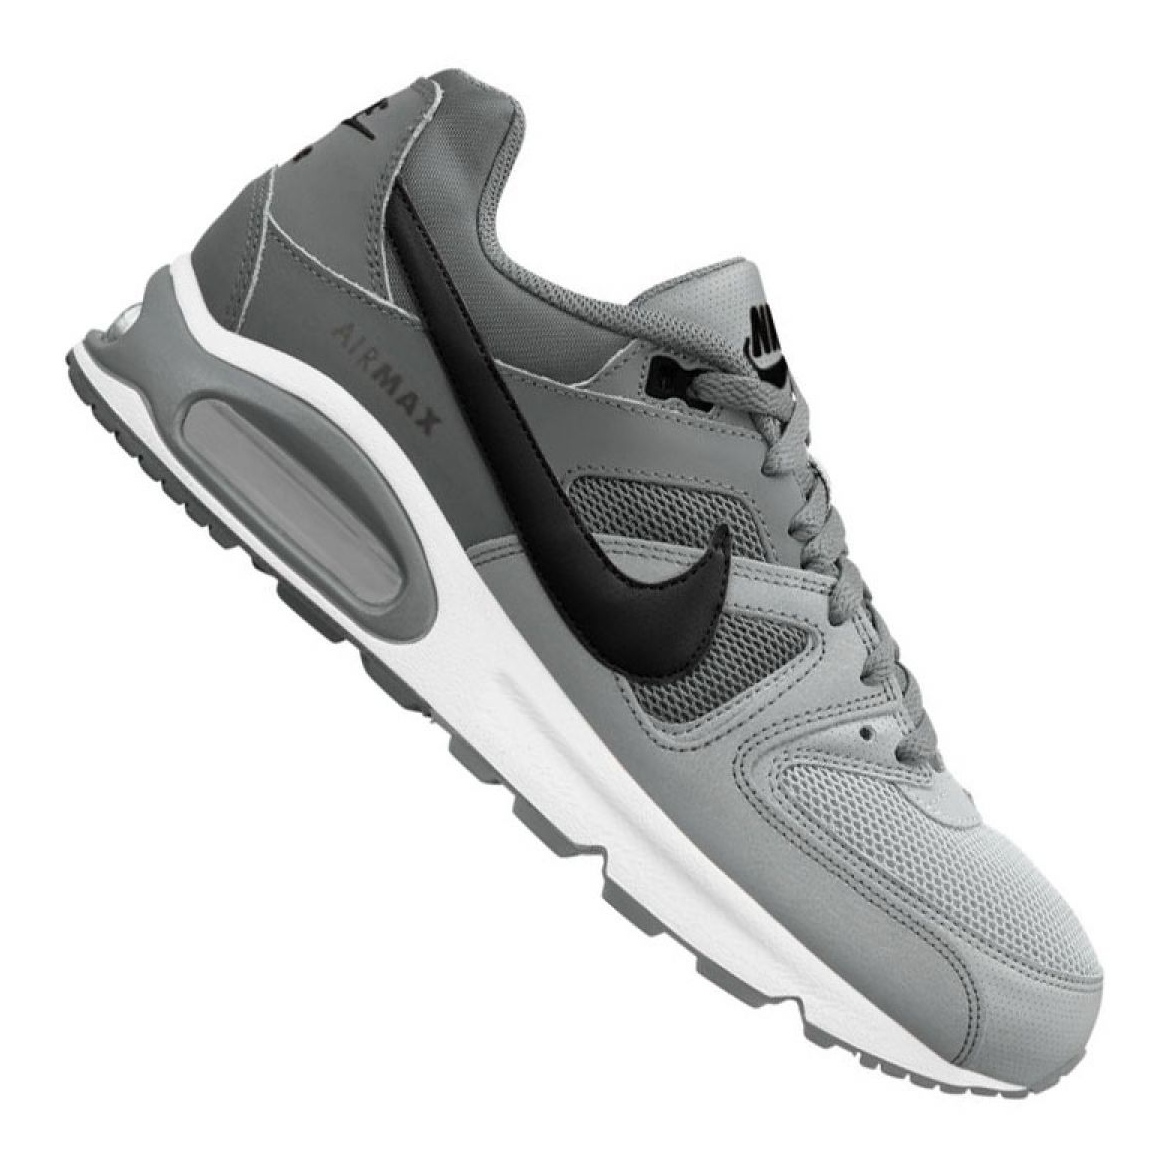 Nike Air Max Command Leather Men Lifestyle Sneakers Shoes New Grey 749760 012